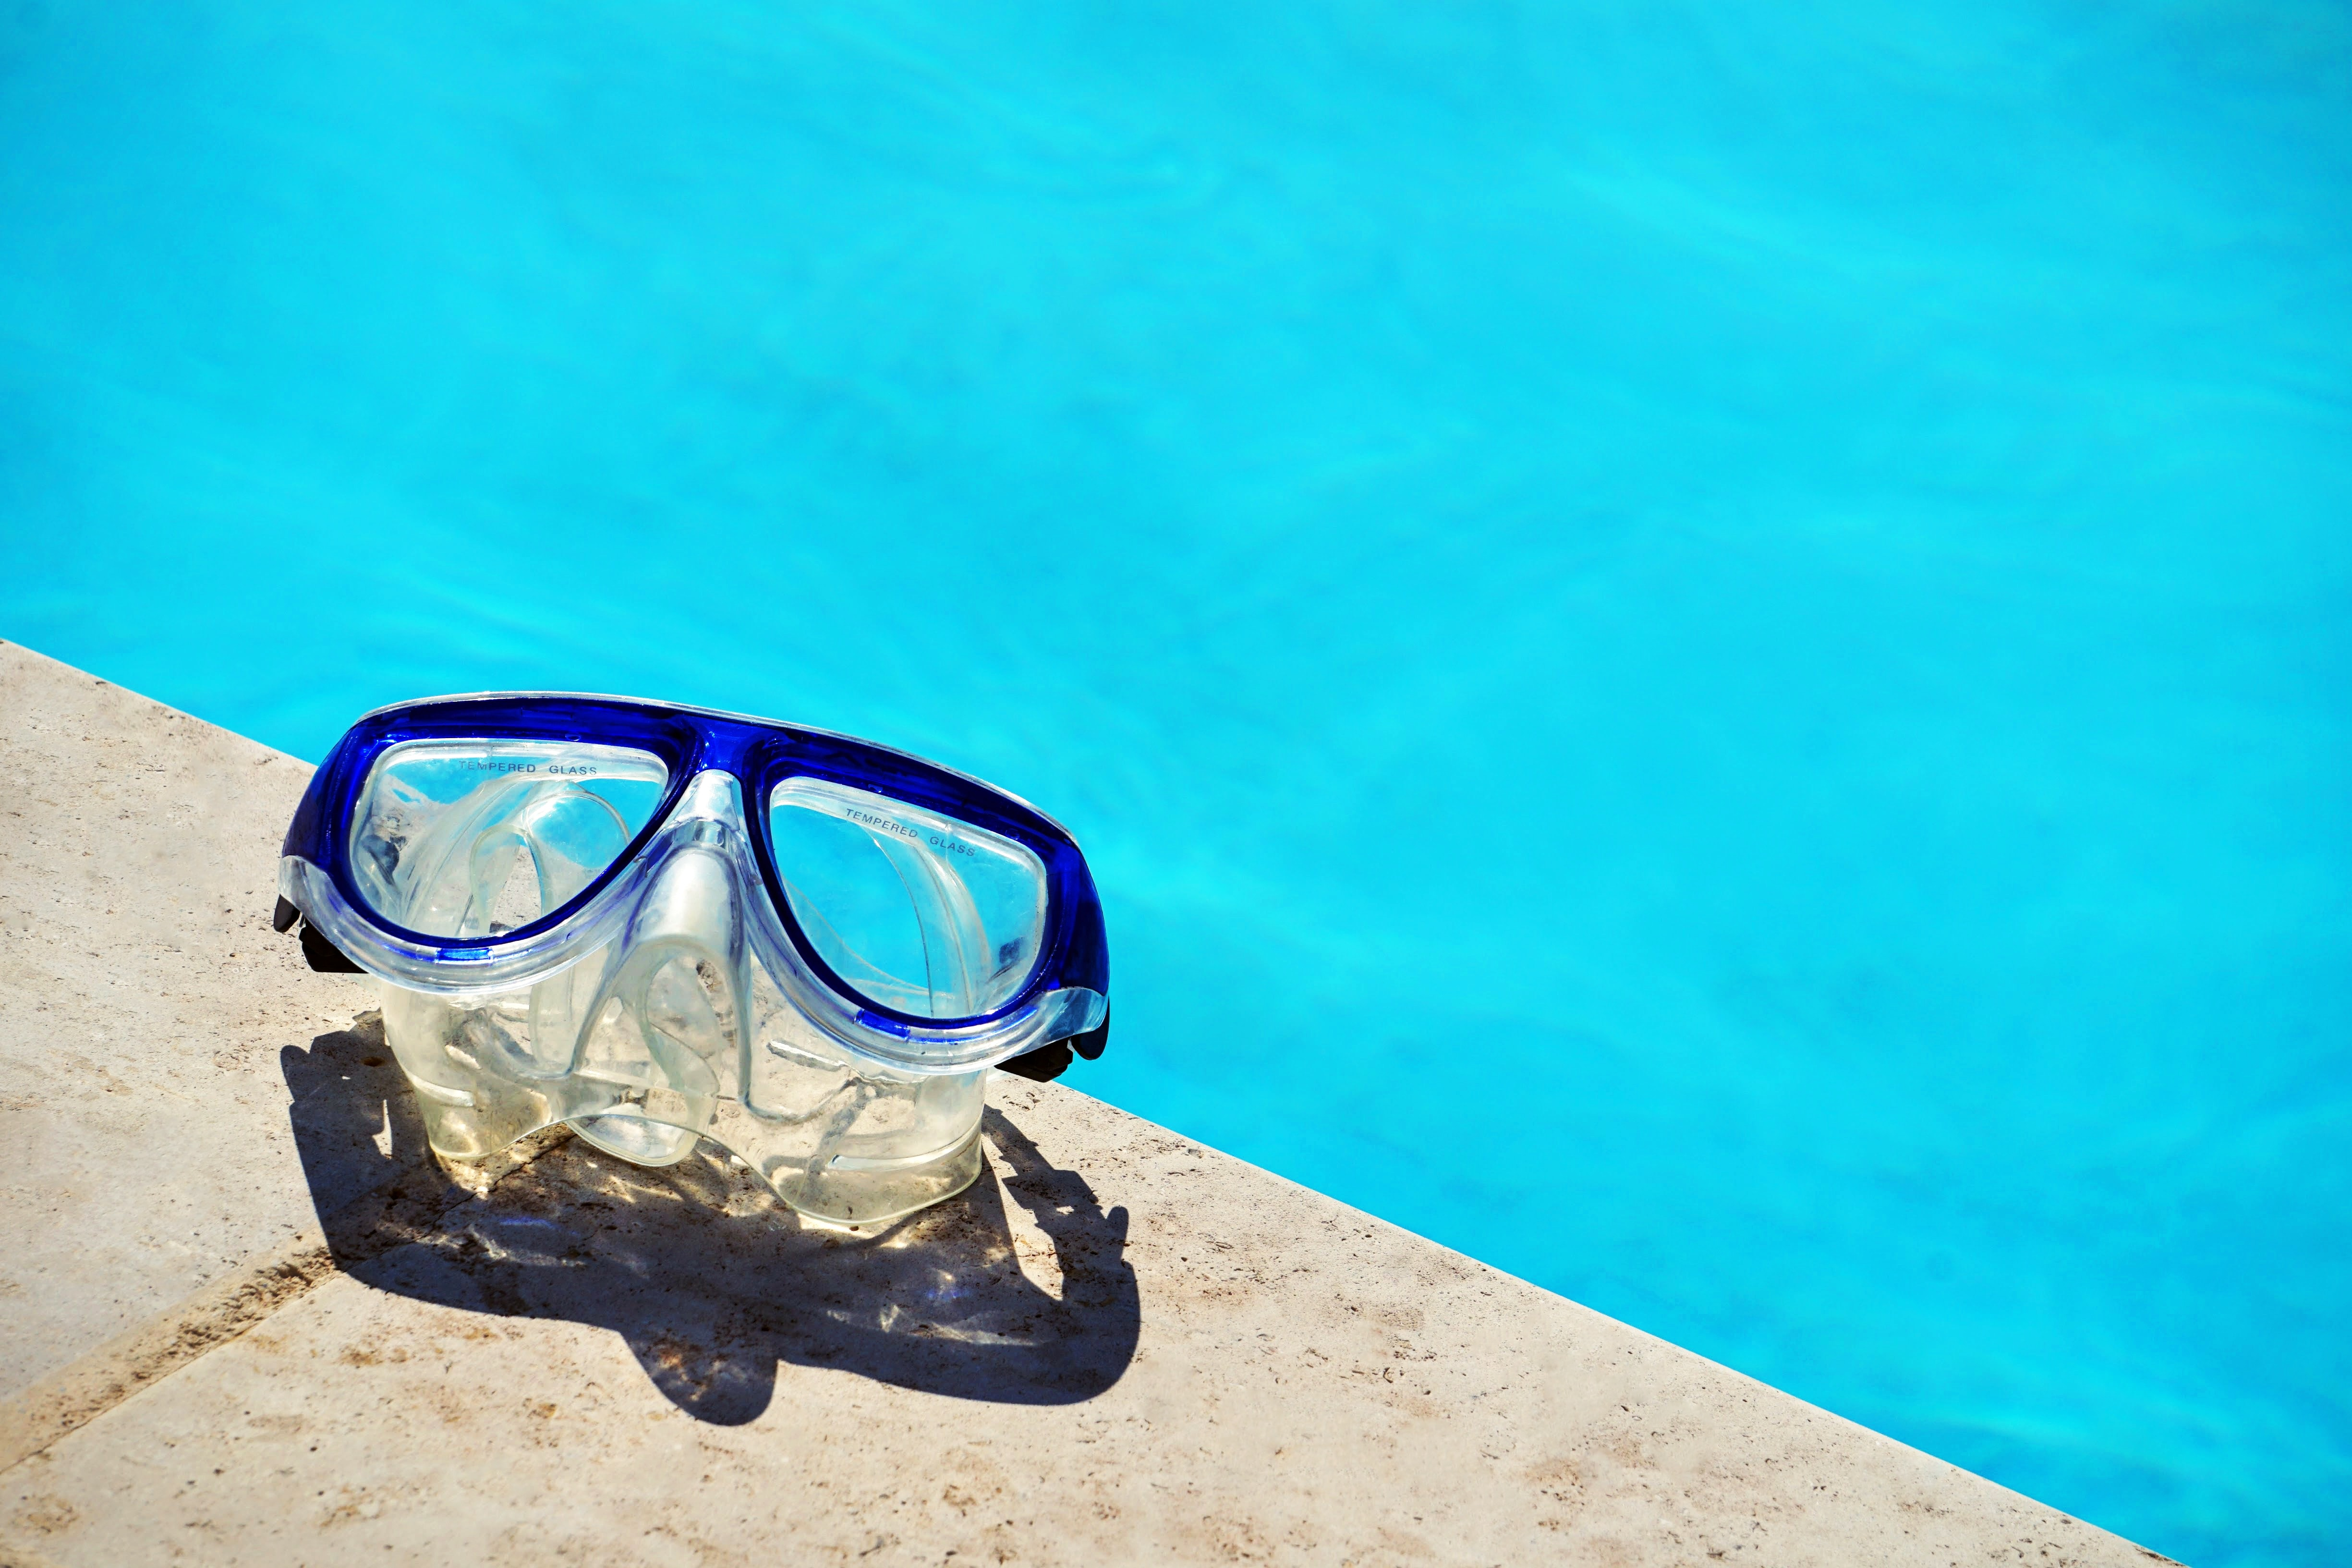 Snorkel goggles sitting on the edge of a simming pool